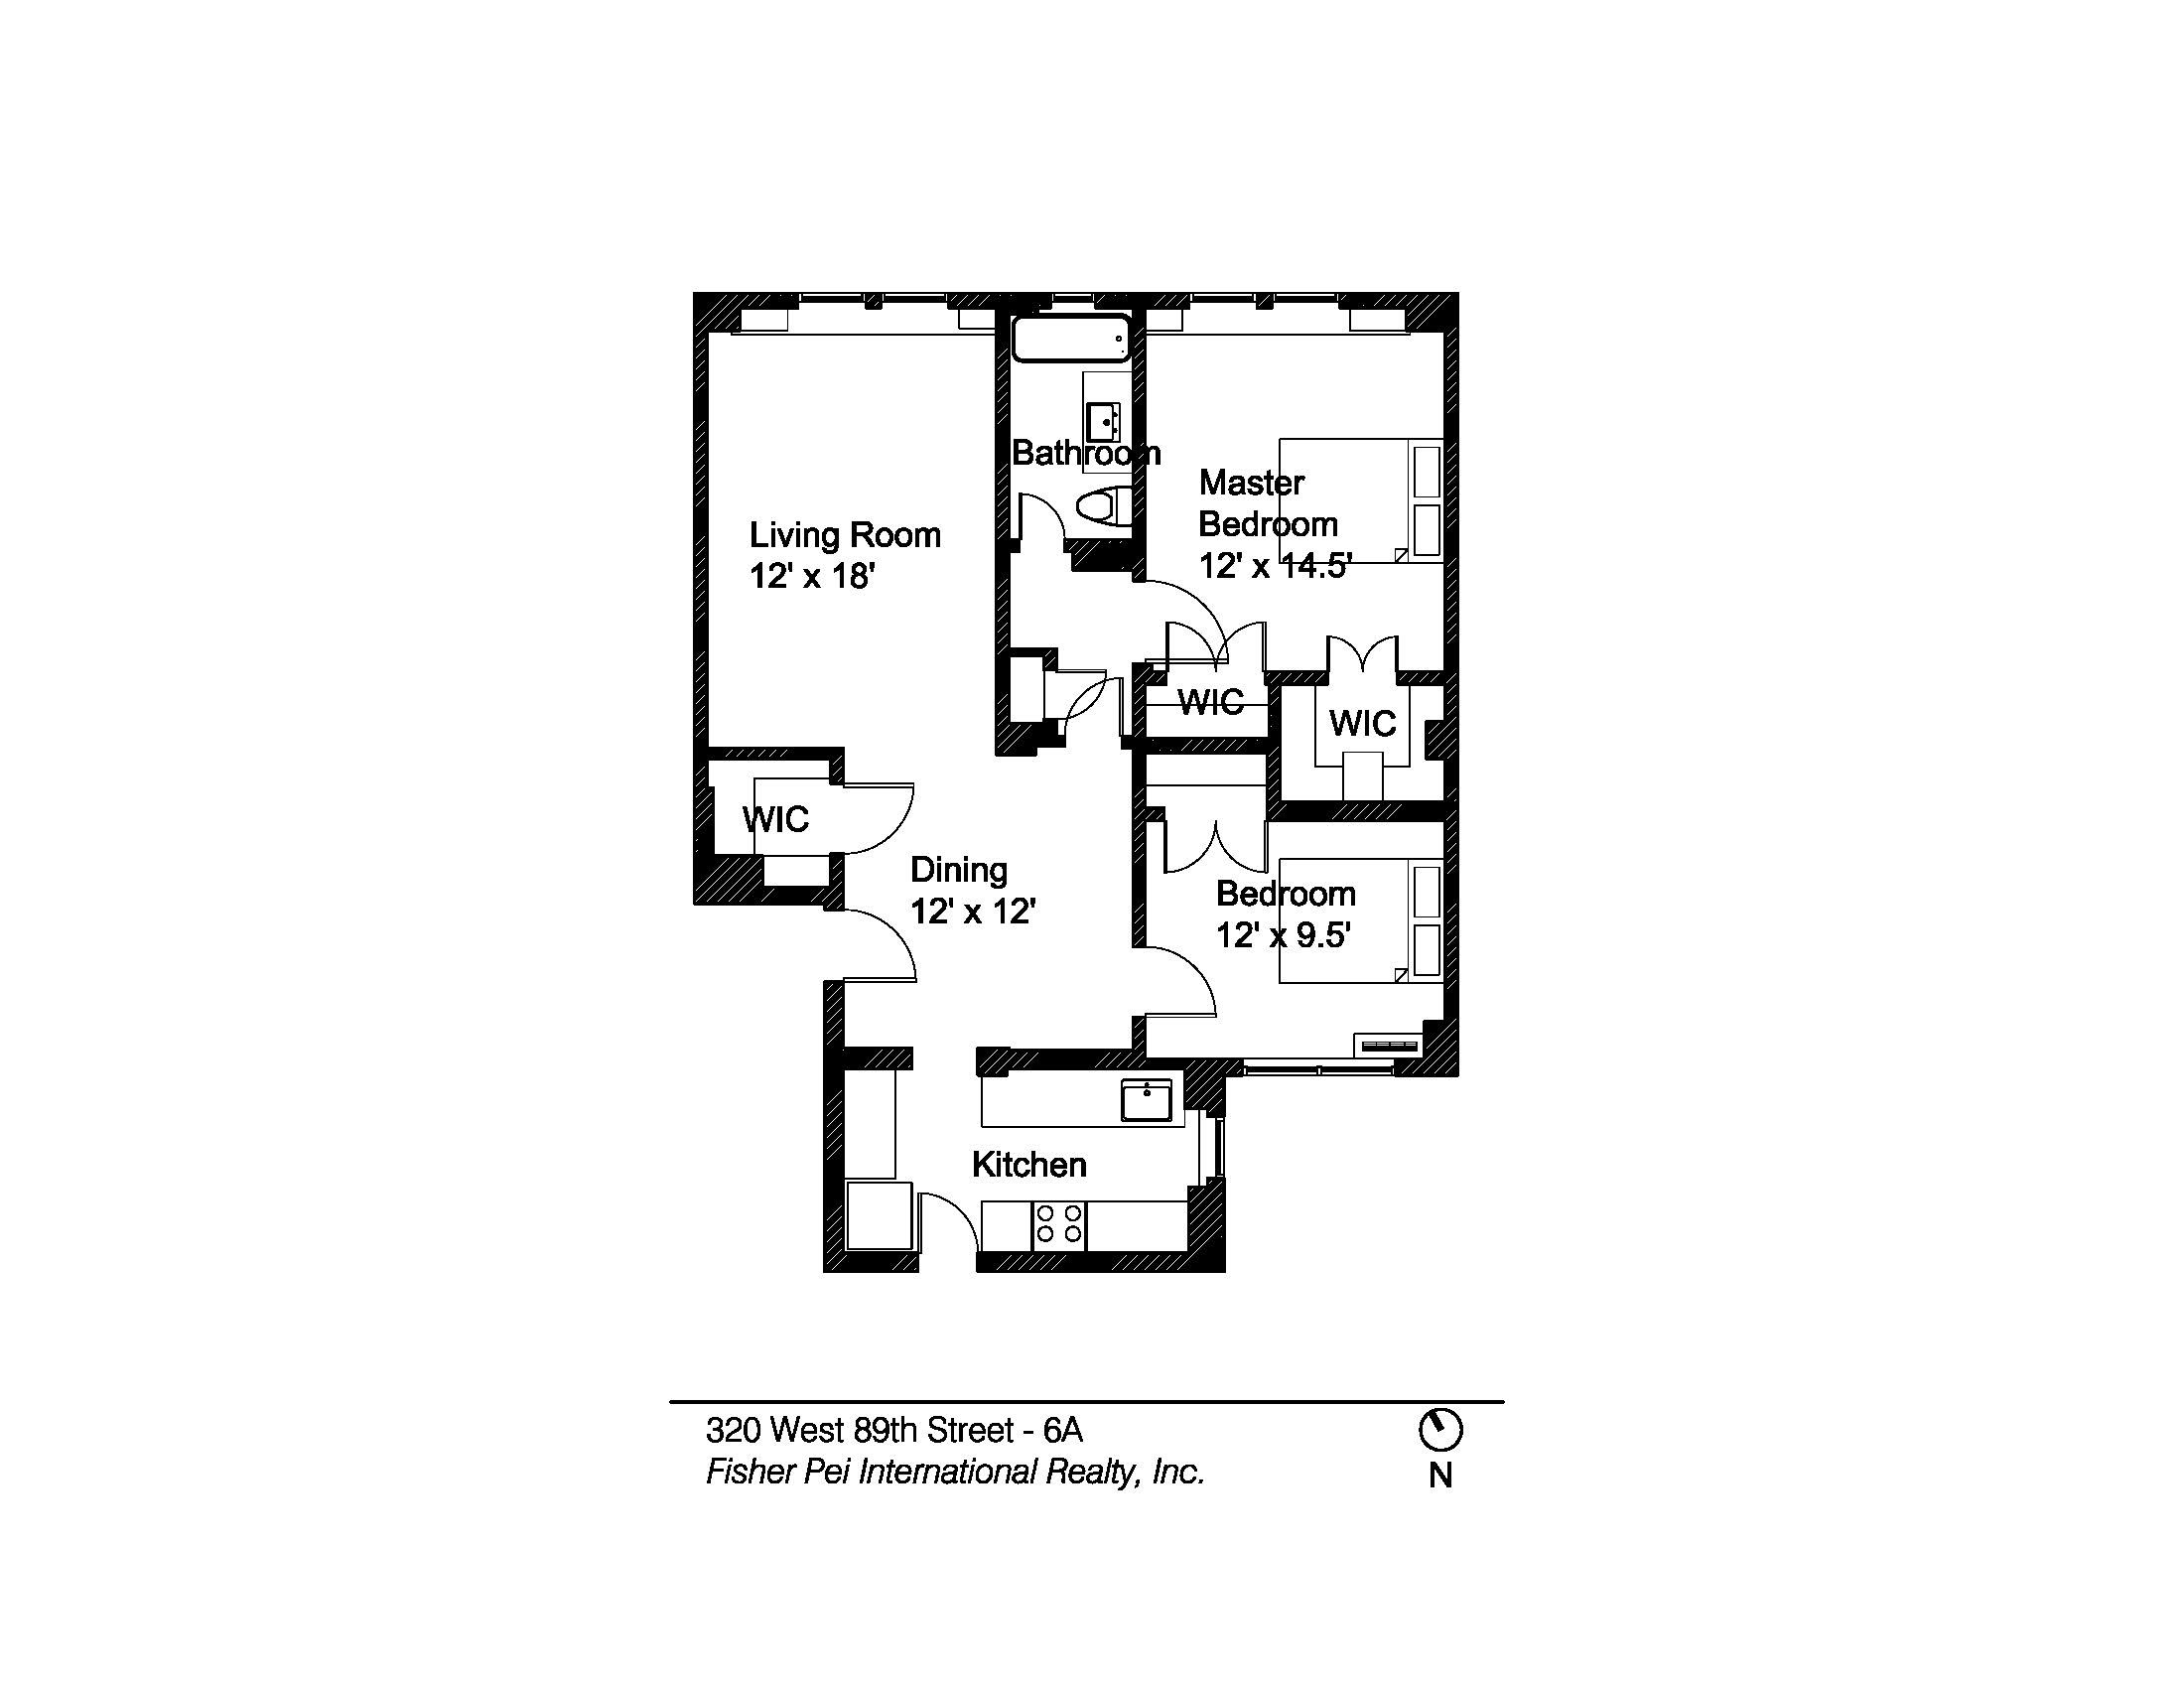 100 What Is Wic In A Floor Plan House Plans